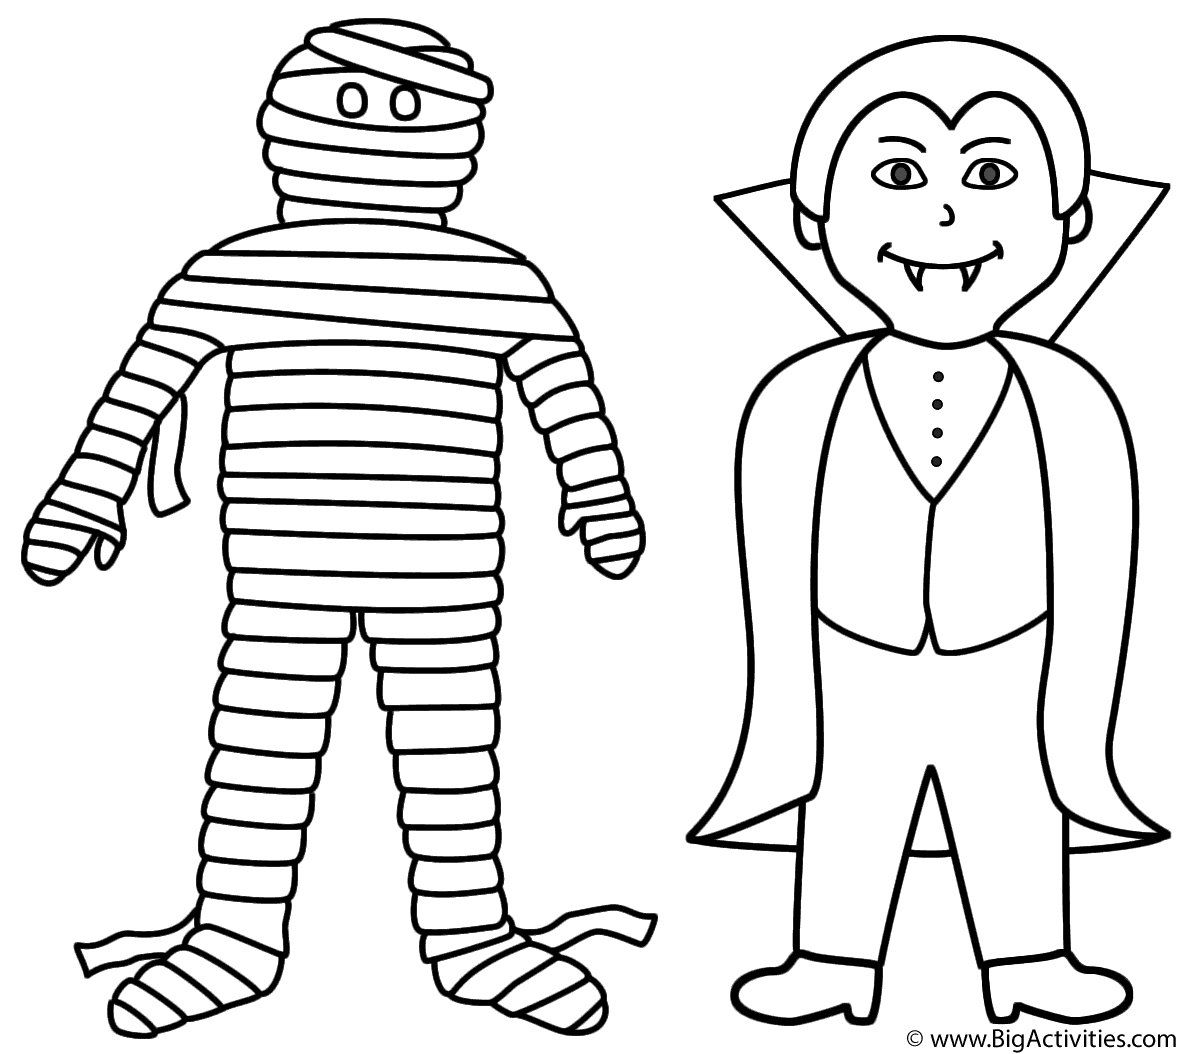 mummy coloring pages halloween cute halloween mummy coloring pages coloring pages for kids mummy coloring halloween pages